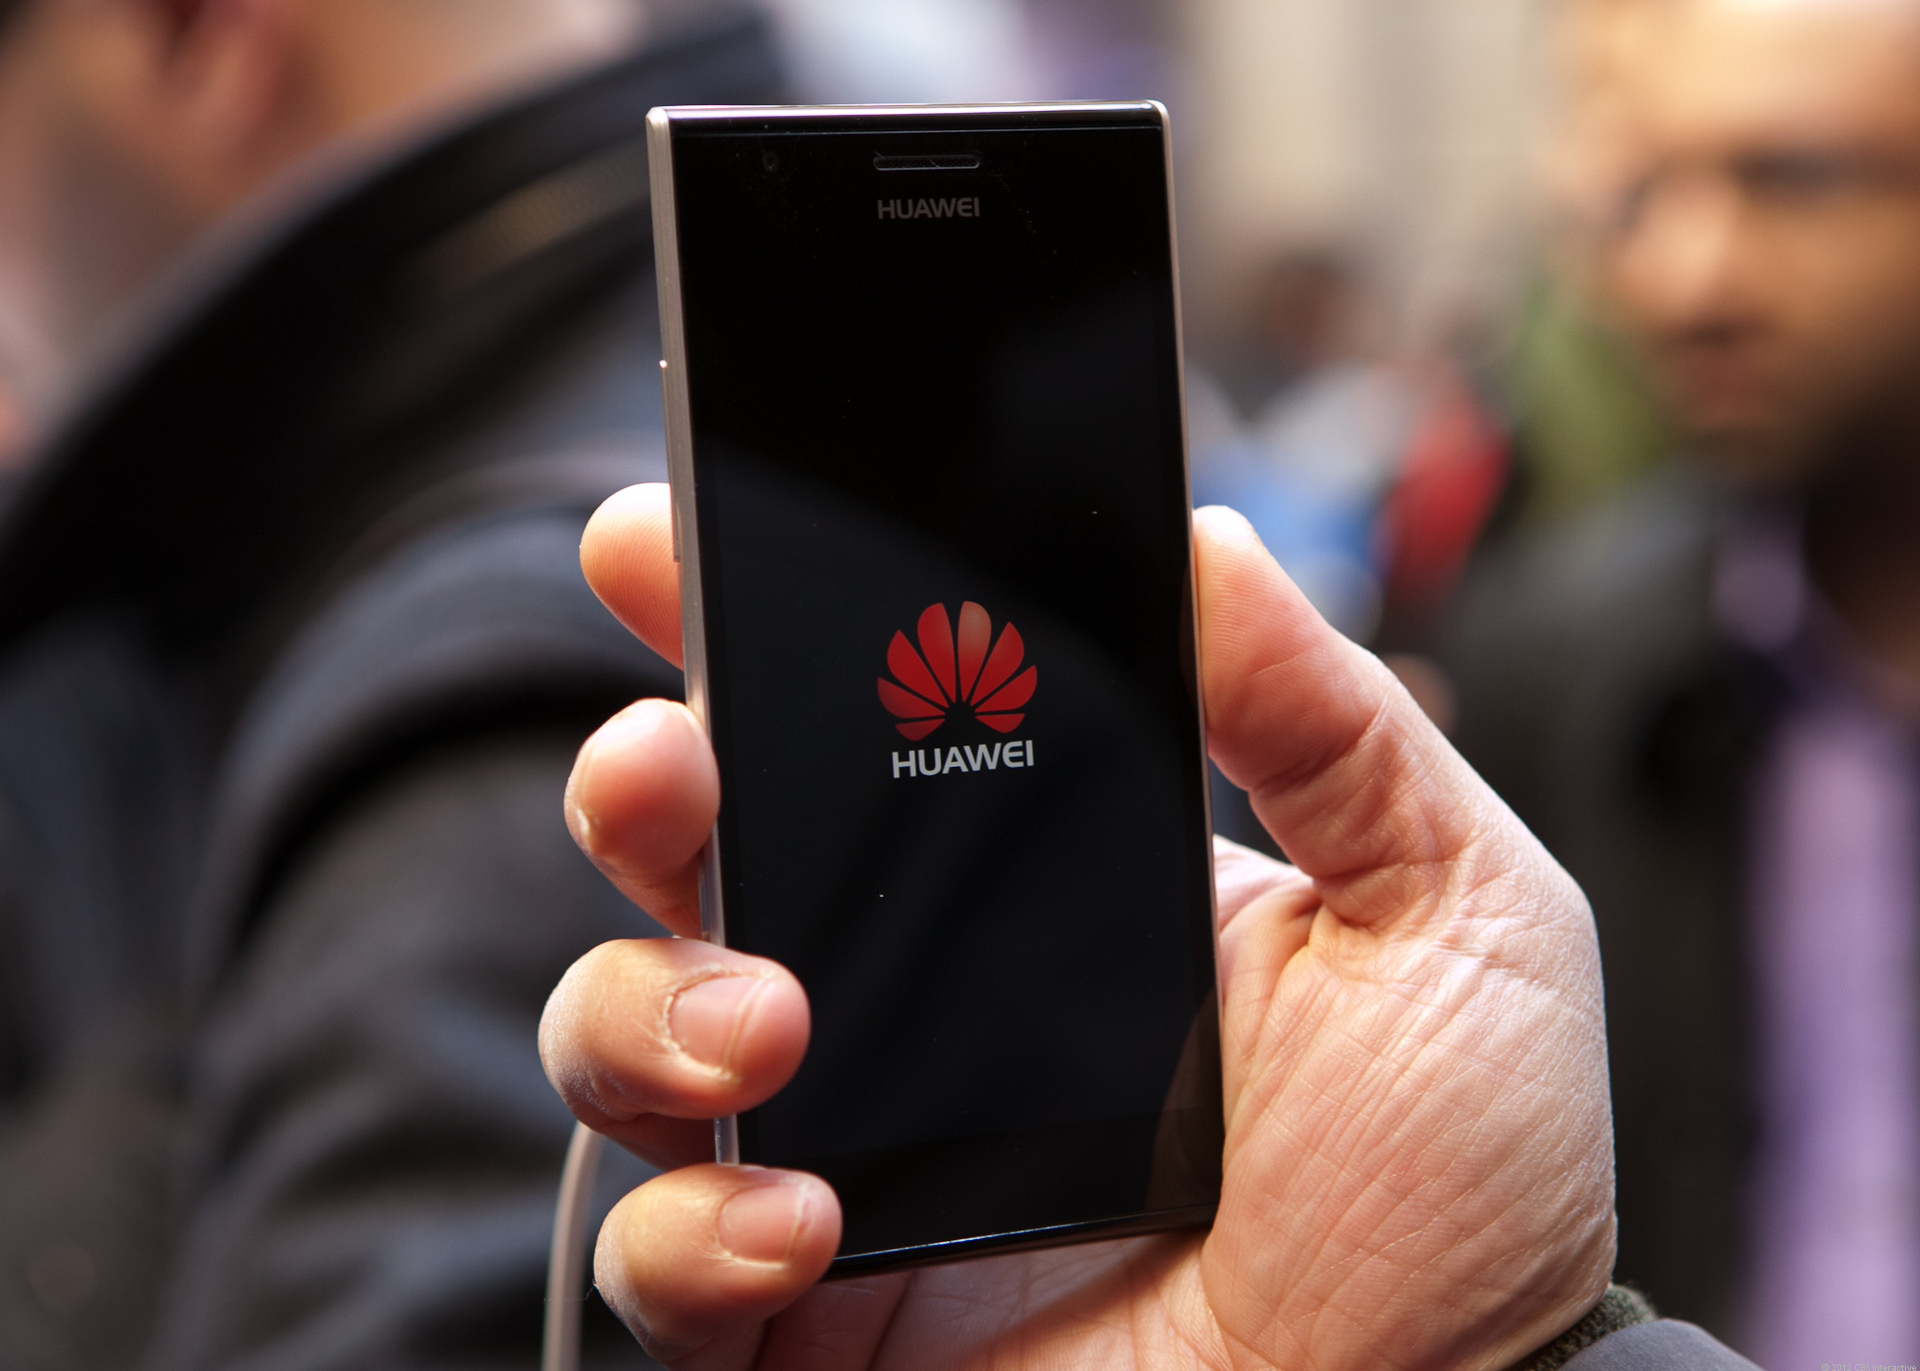 Huawei's Ascend P2